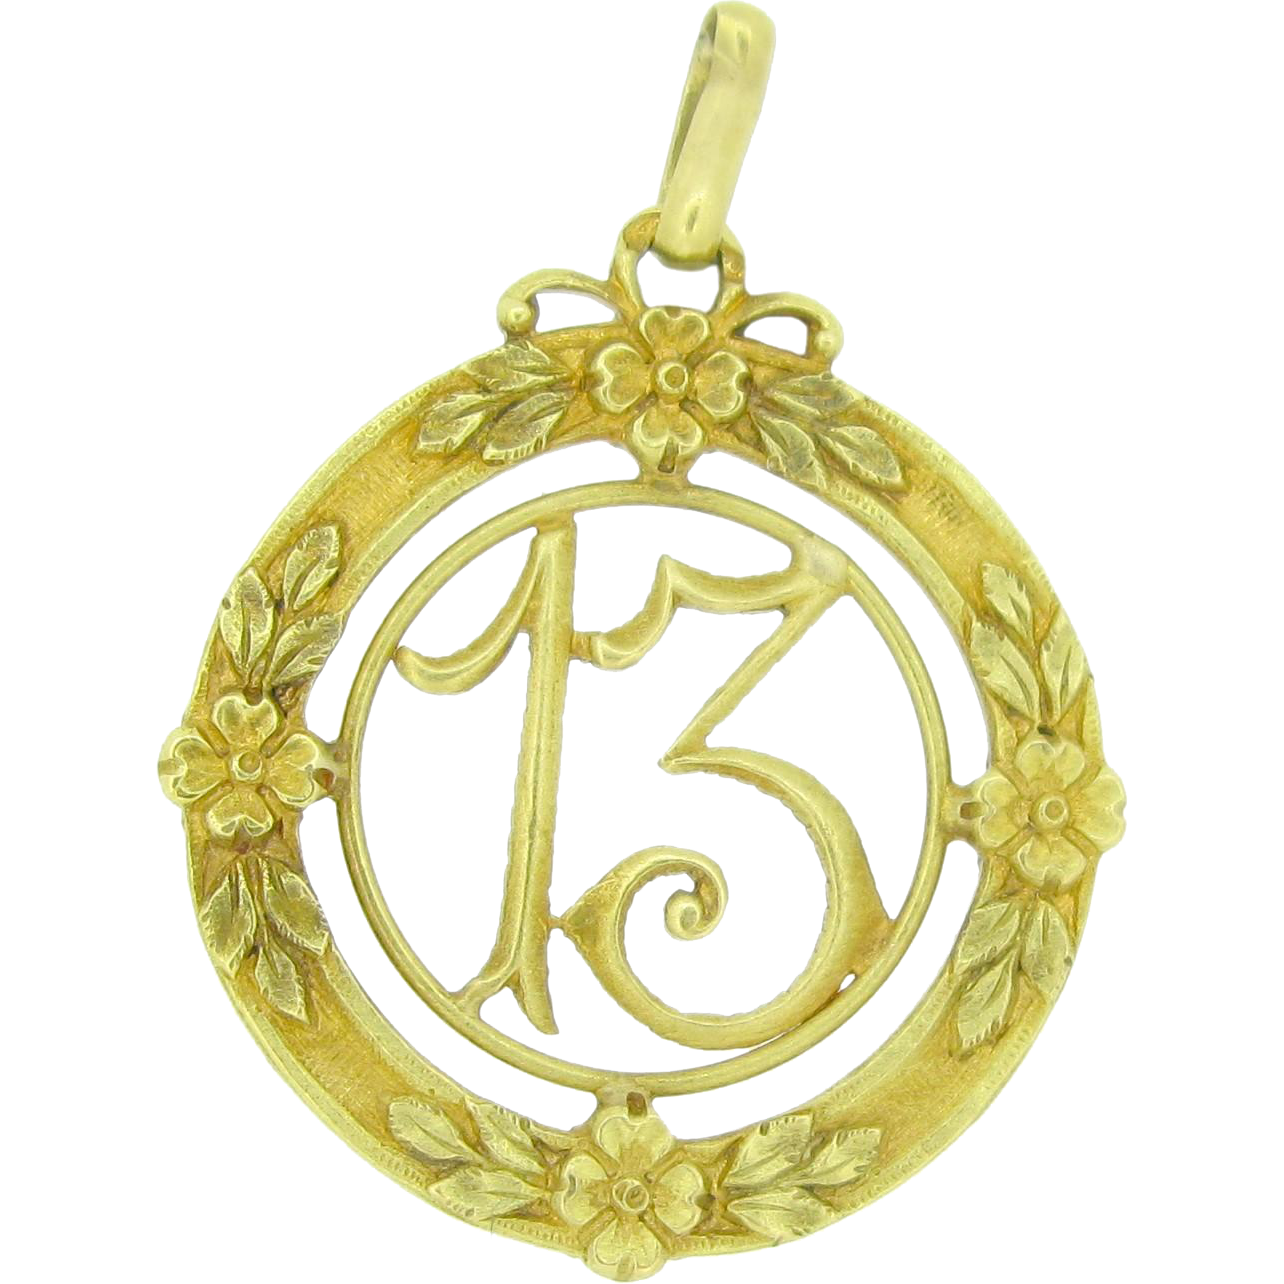 Antique French Lucky 13 Charm Or Pendant, 18kt Yellow Gold. Lowest Price Watches. Sandalwood Watches. Banded Engagement Rings. Pink Pearl Necklace. Inlay Pendant. Rose Gold Diamond Band. President Rolex Watches. Kidney Transplant Bracelet